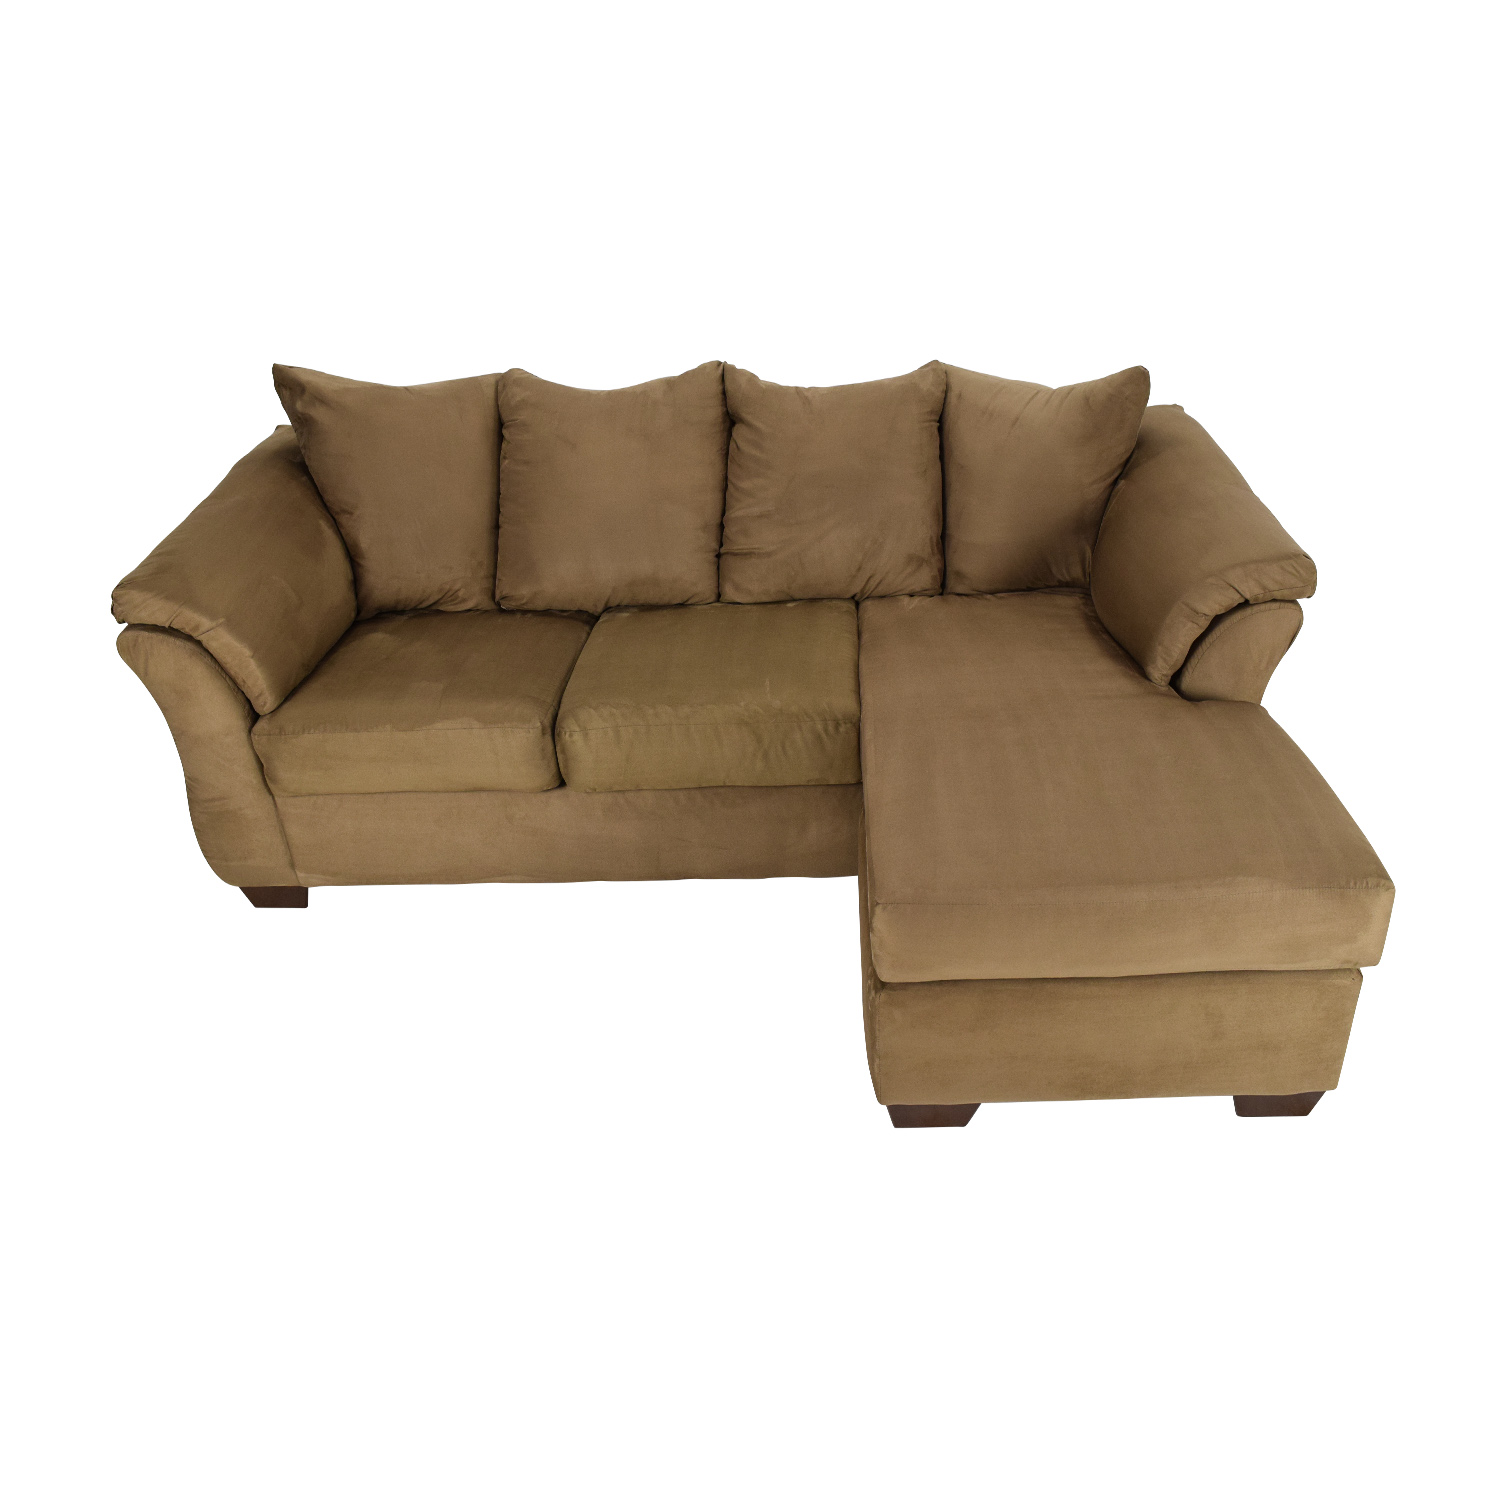 Jennifer Furniture Reversible Chaise Couch for sale